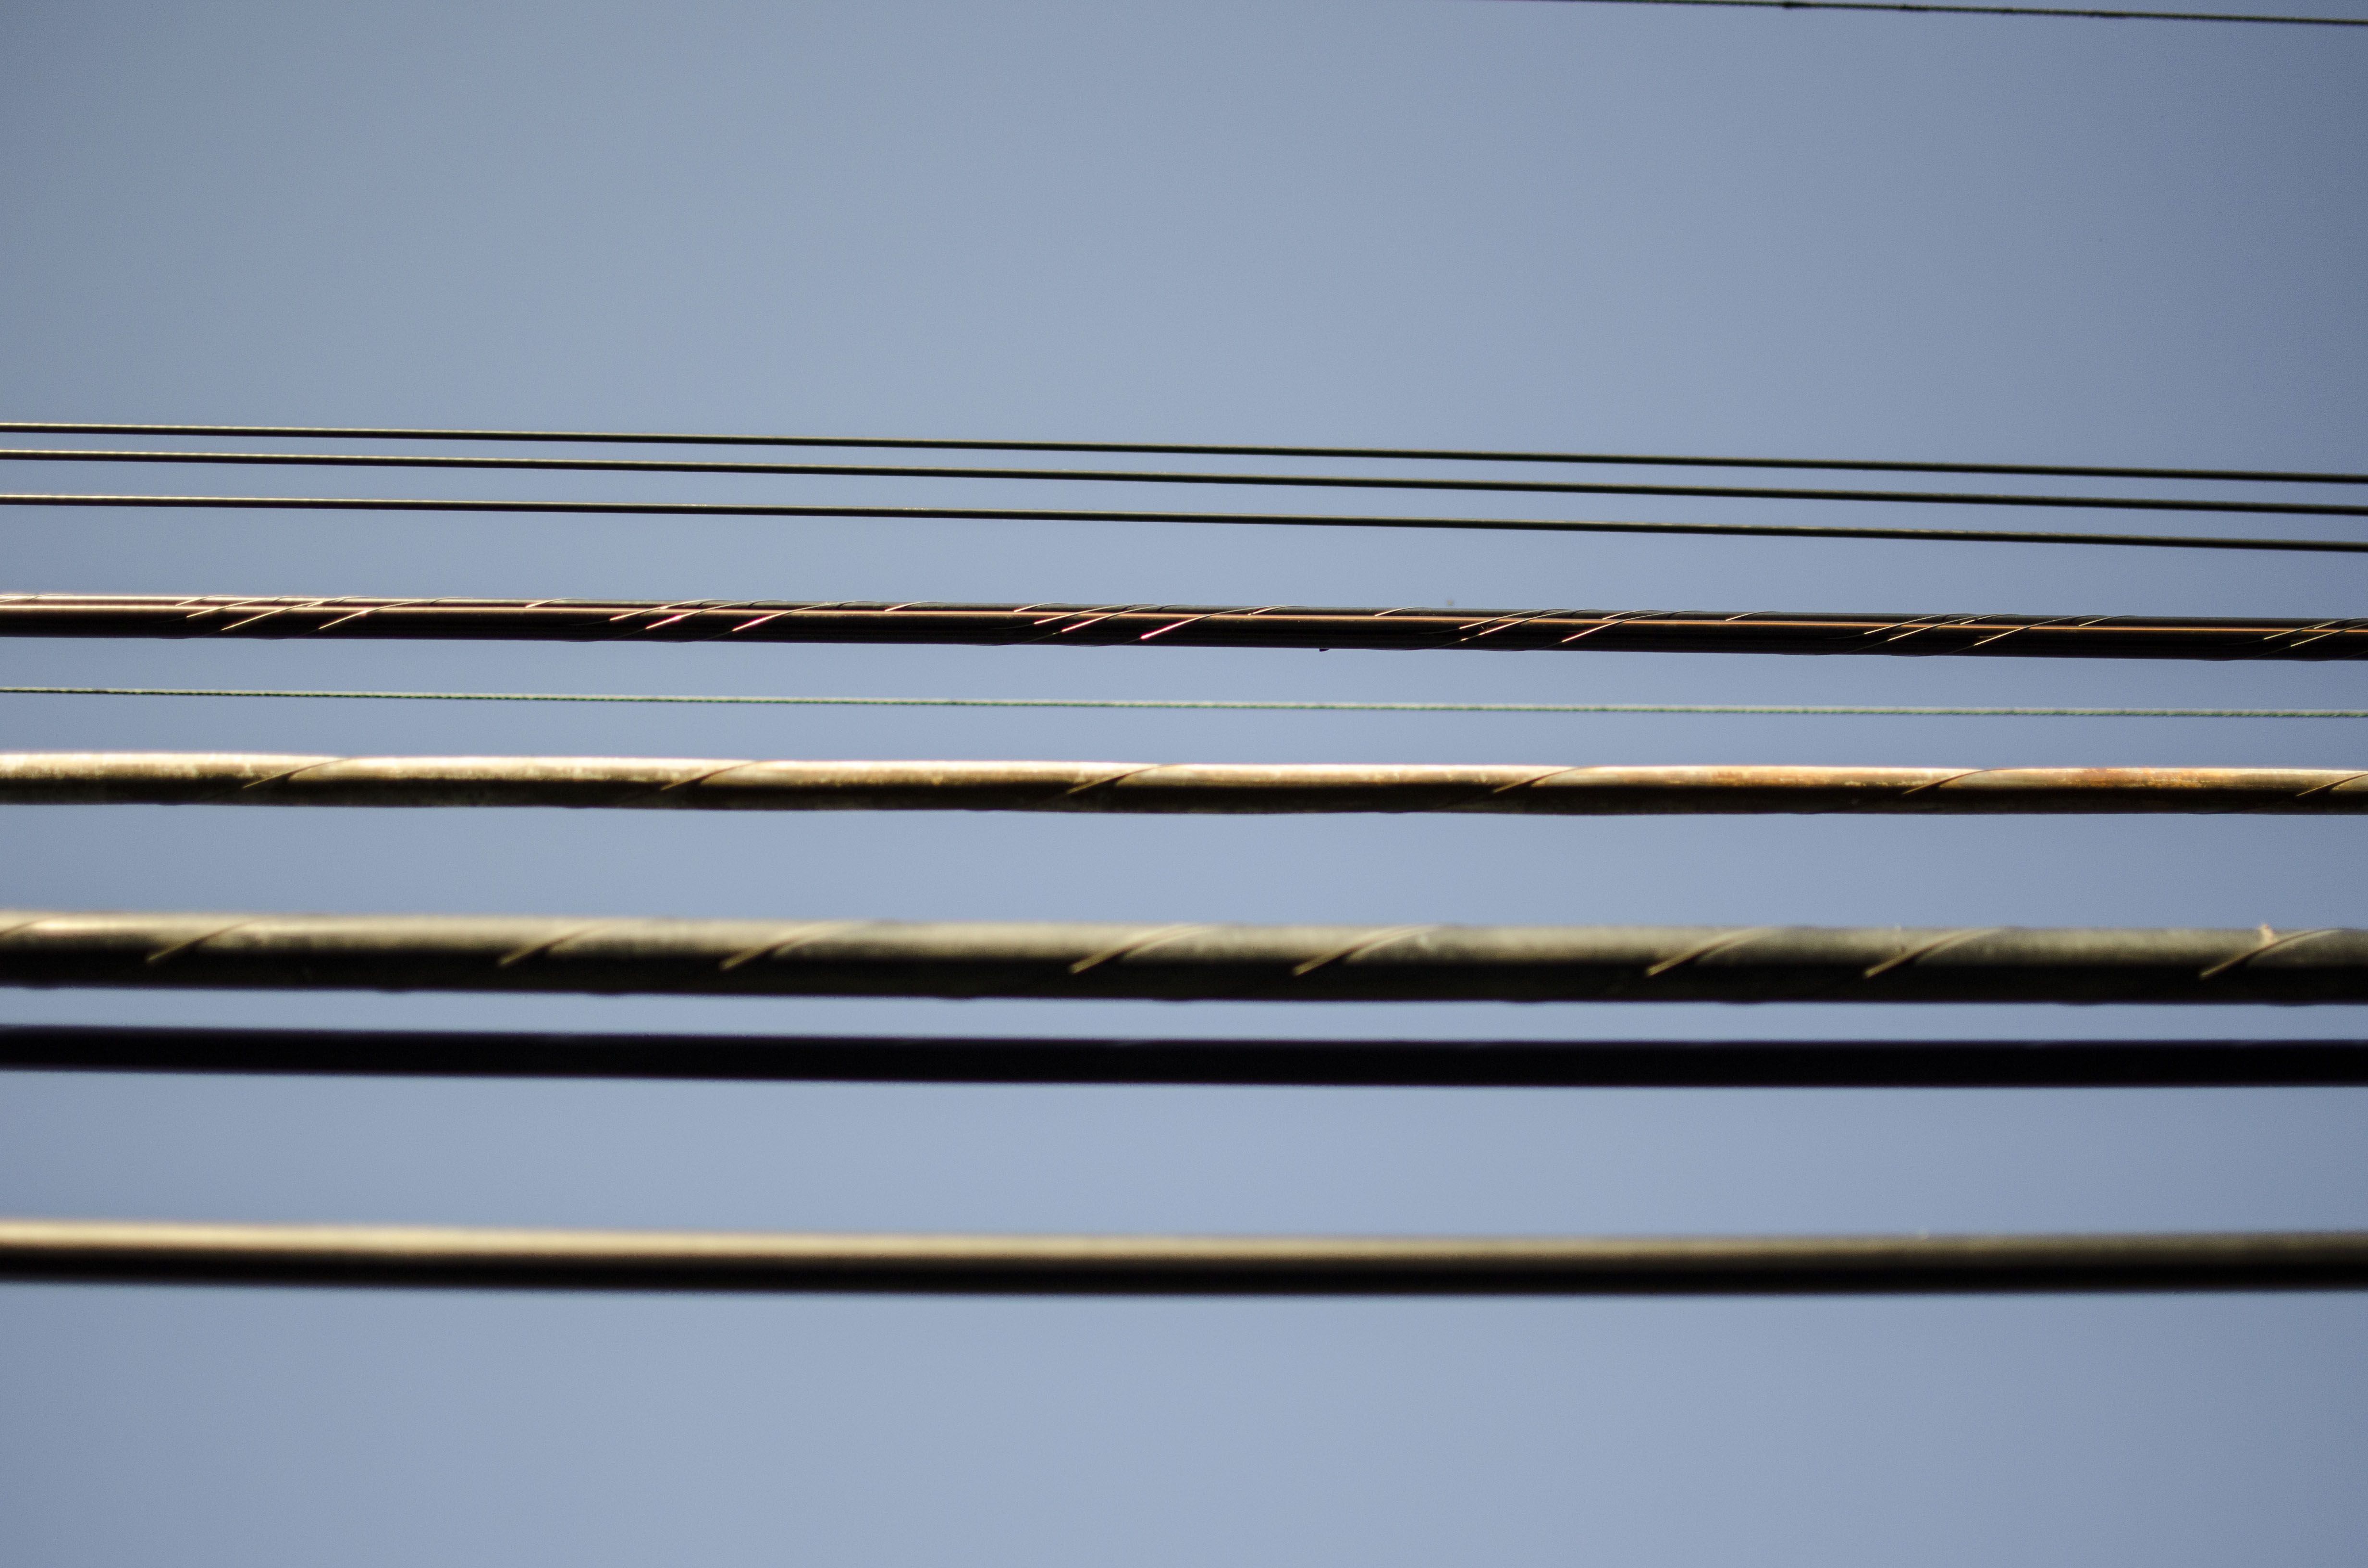 Wires by Justin Ackerman